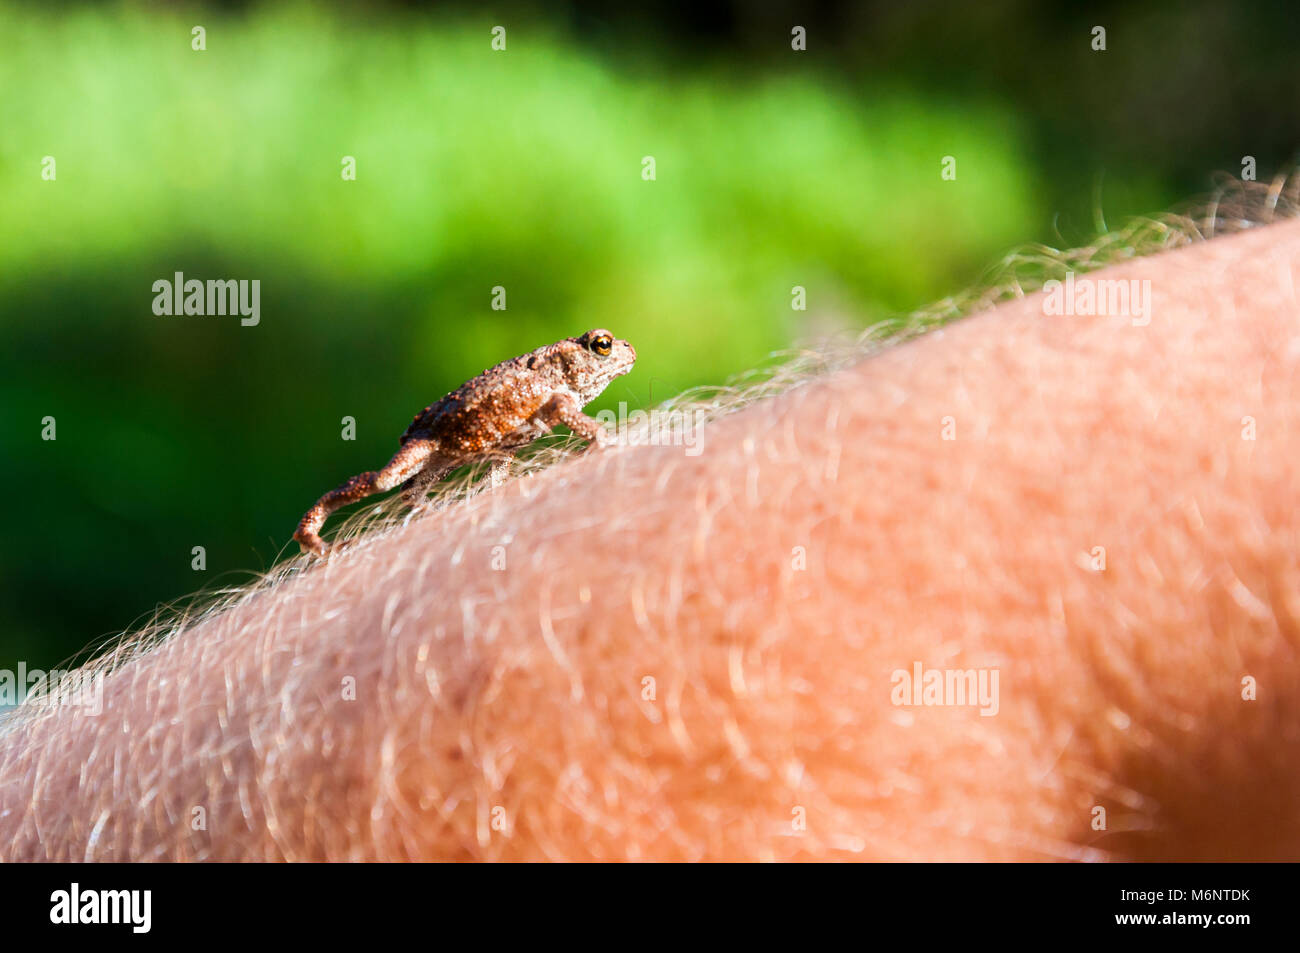 Small amphibian Common toad climbing up on hairy skin of man's arm - Stock Image